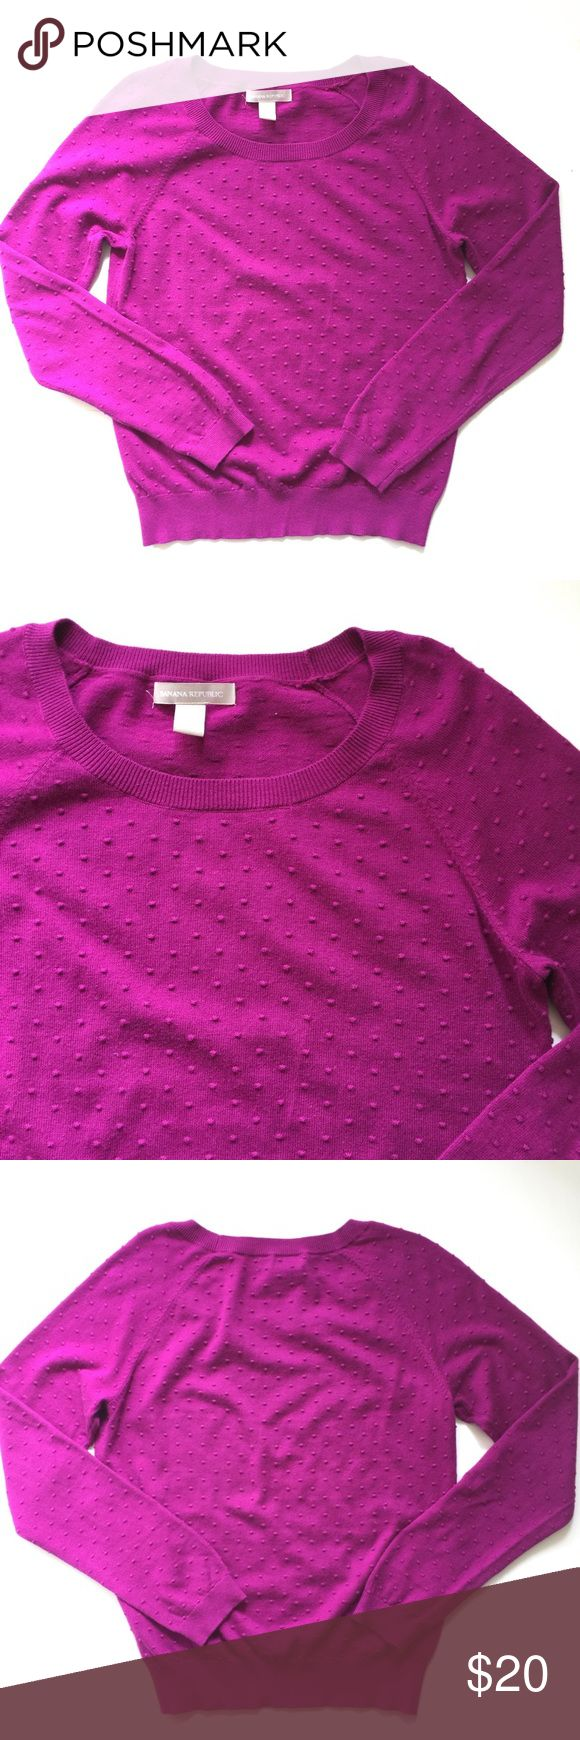 """Banana Republic Fuschia Swiss Dotted Sweater // M Awesome Banana Republic pullover sweater. Berry fine knit with dot texture. Very good condition. 70% cotton, 25% nylon, 5% cashmere. Size medium. 24"""" shoulder to bottom hem. 18"""" pit to pit. Banana Republic Sweaters Crew & Scoop Necks"""